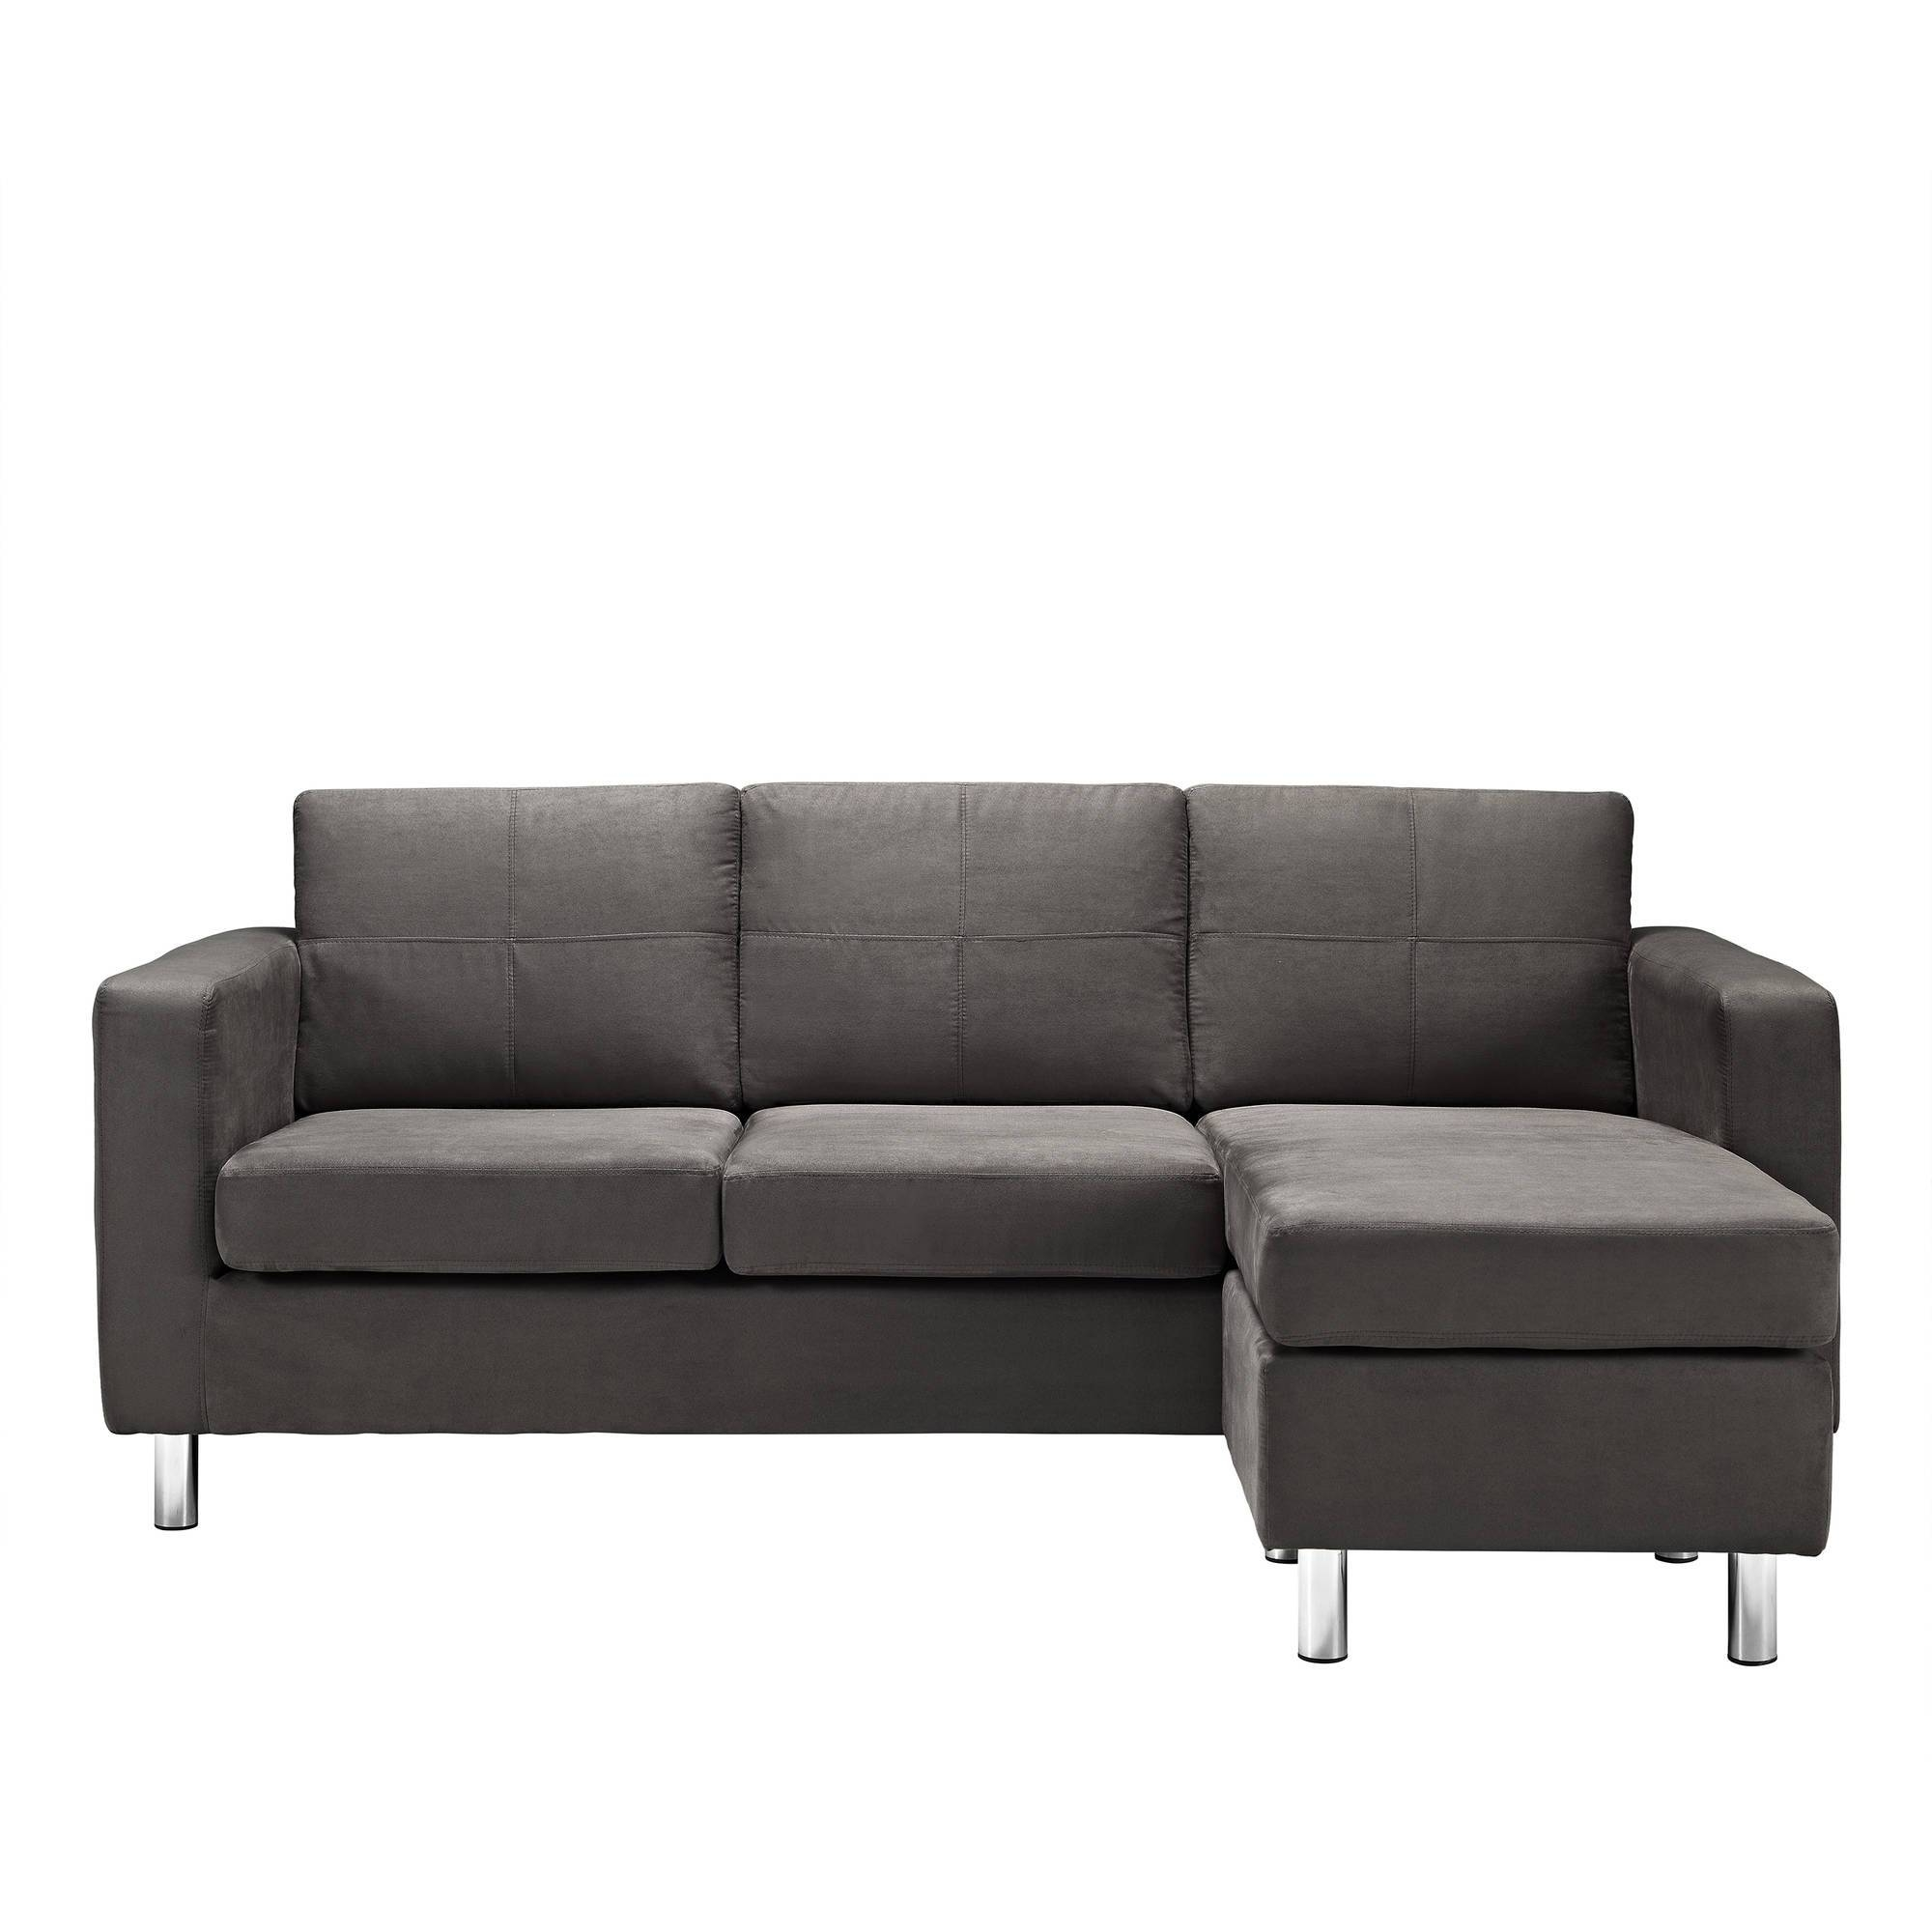 Dorel Living Small Spaces Configurable Sectional Sofa, Multiple within Condo Sectional Sofas (Image 11 of 30)